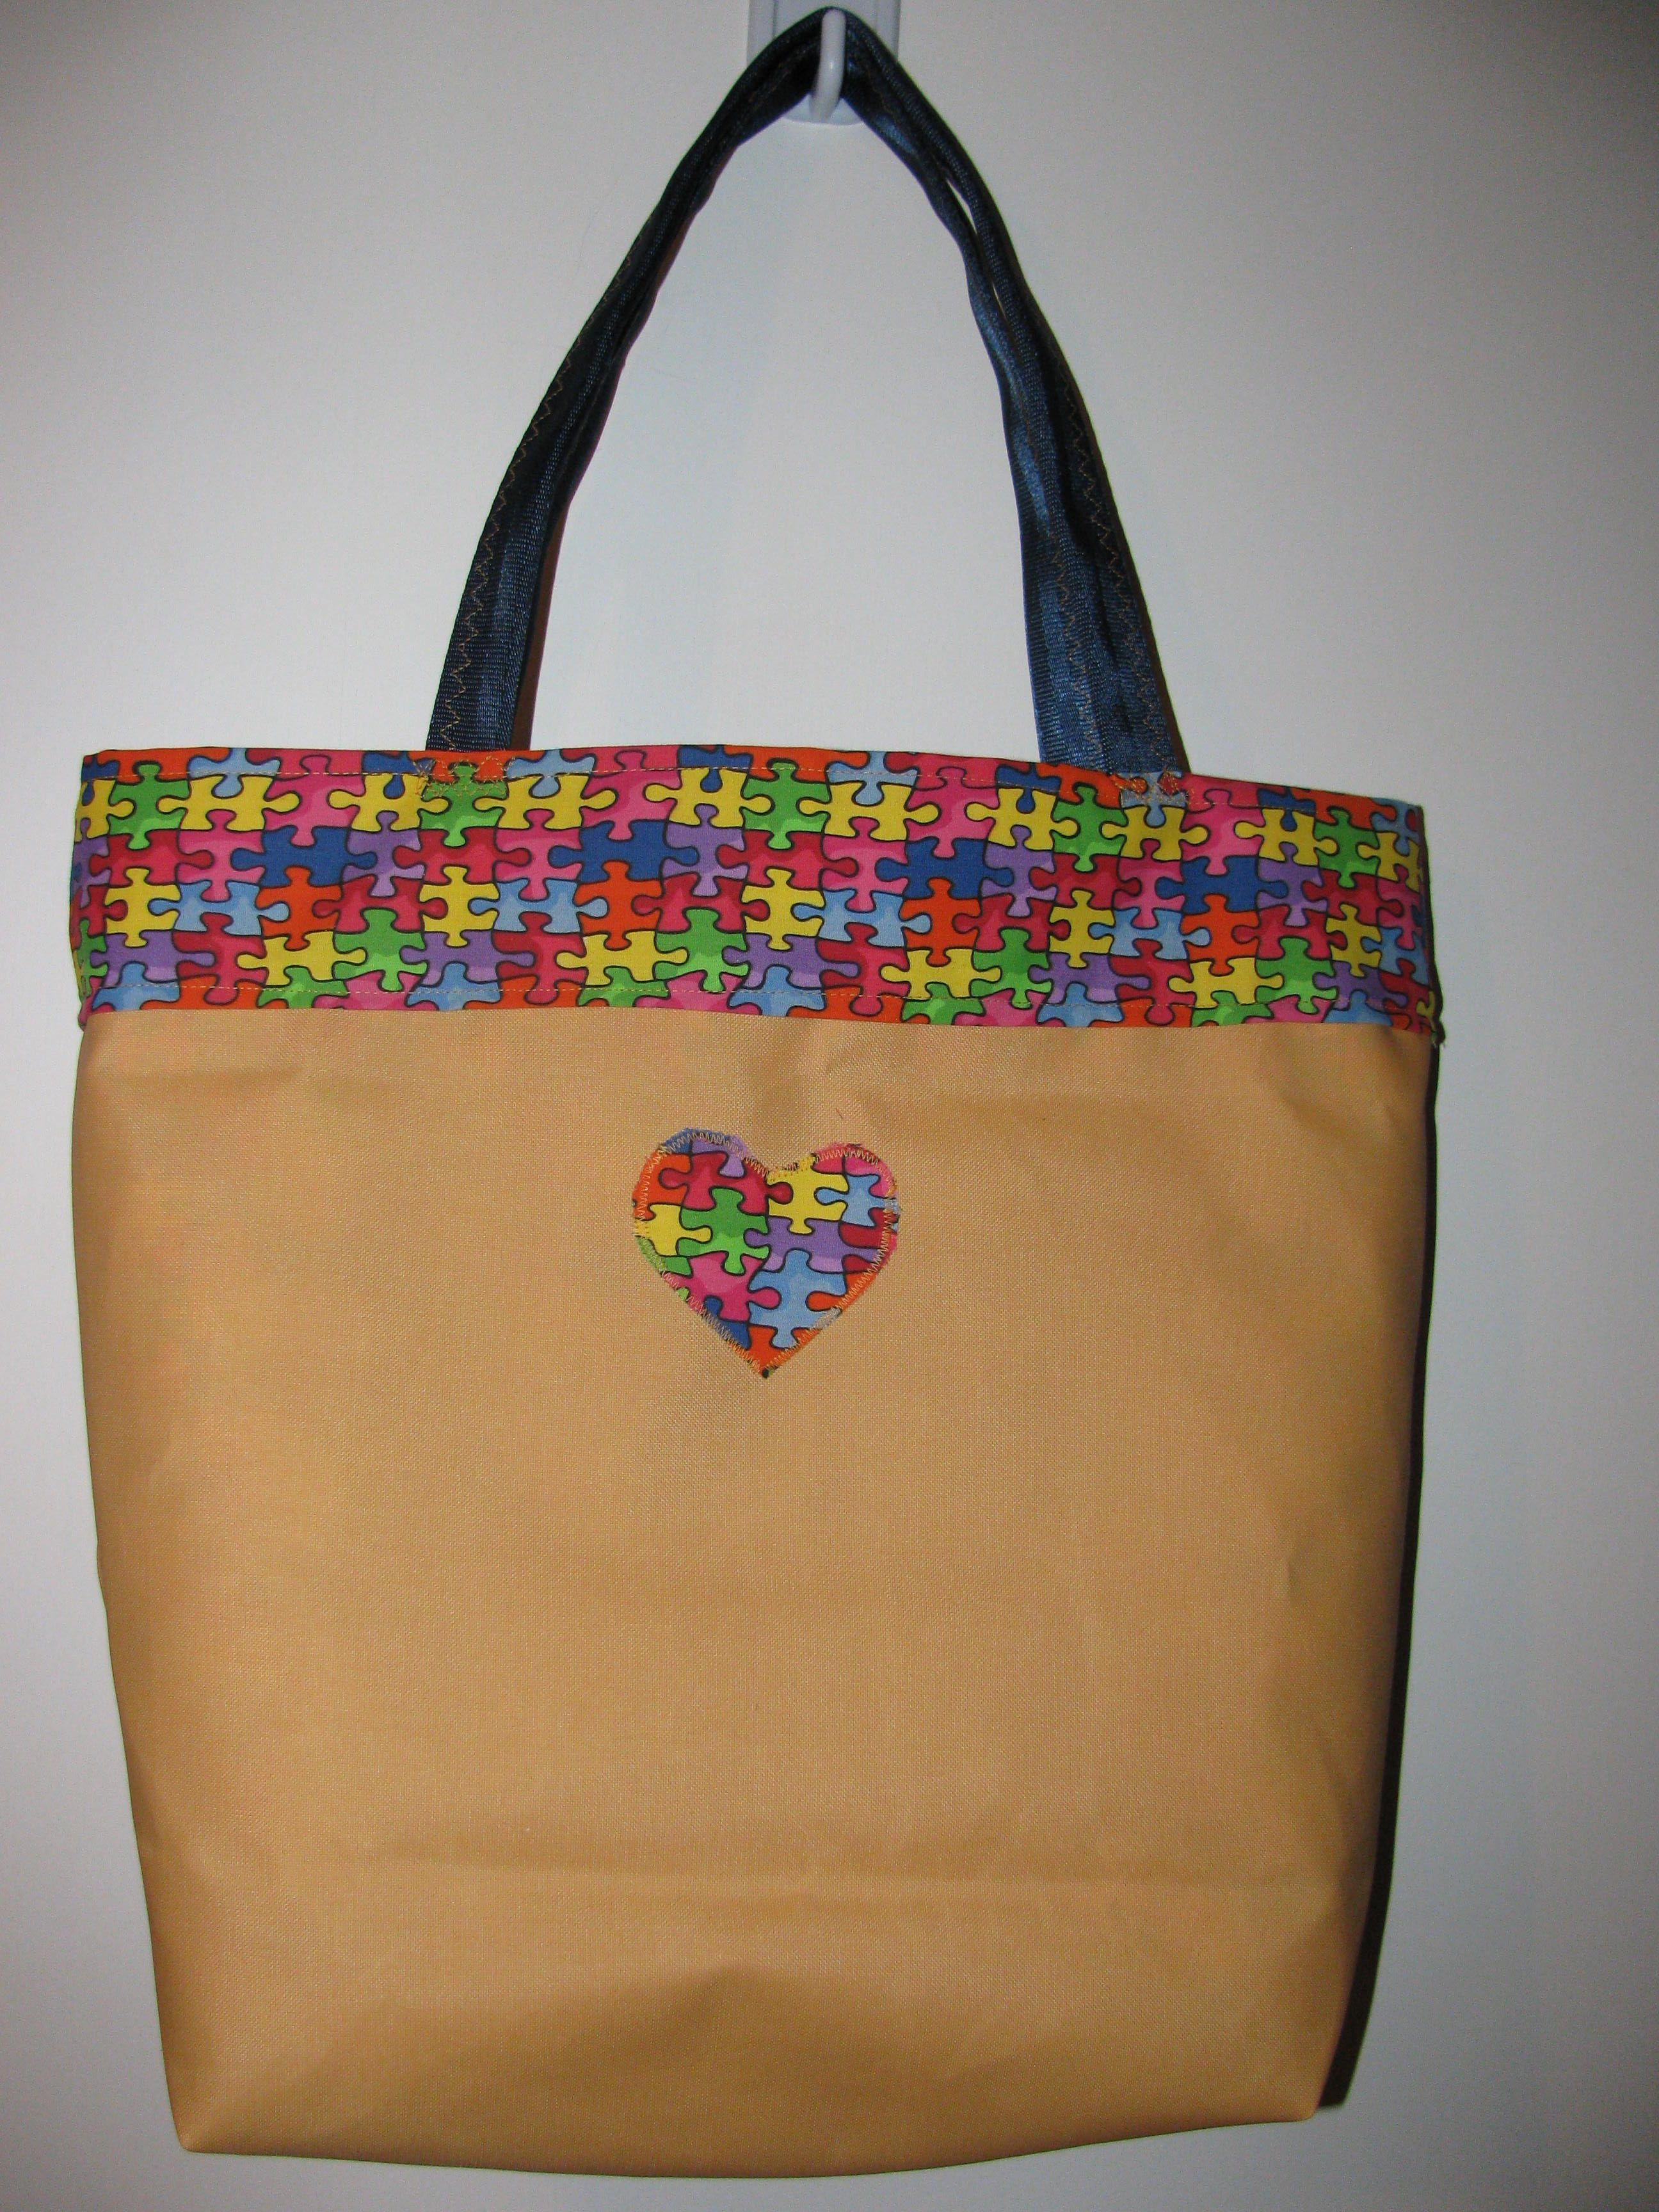 Tote Bag Made From Airbag And Seatbelt Fabric From S